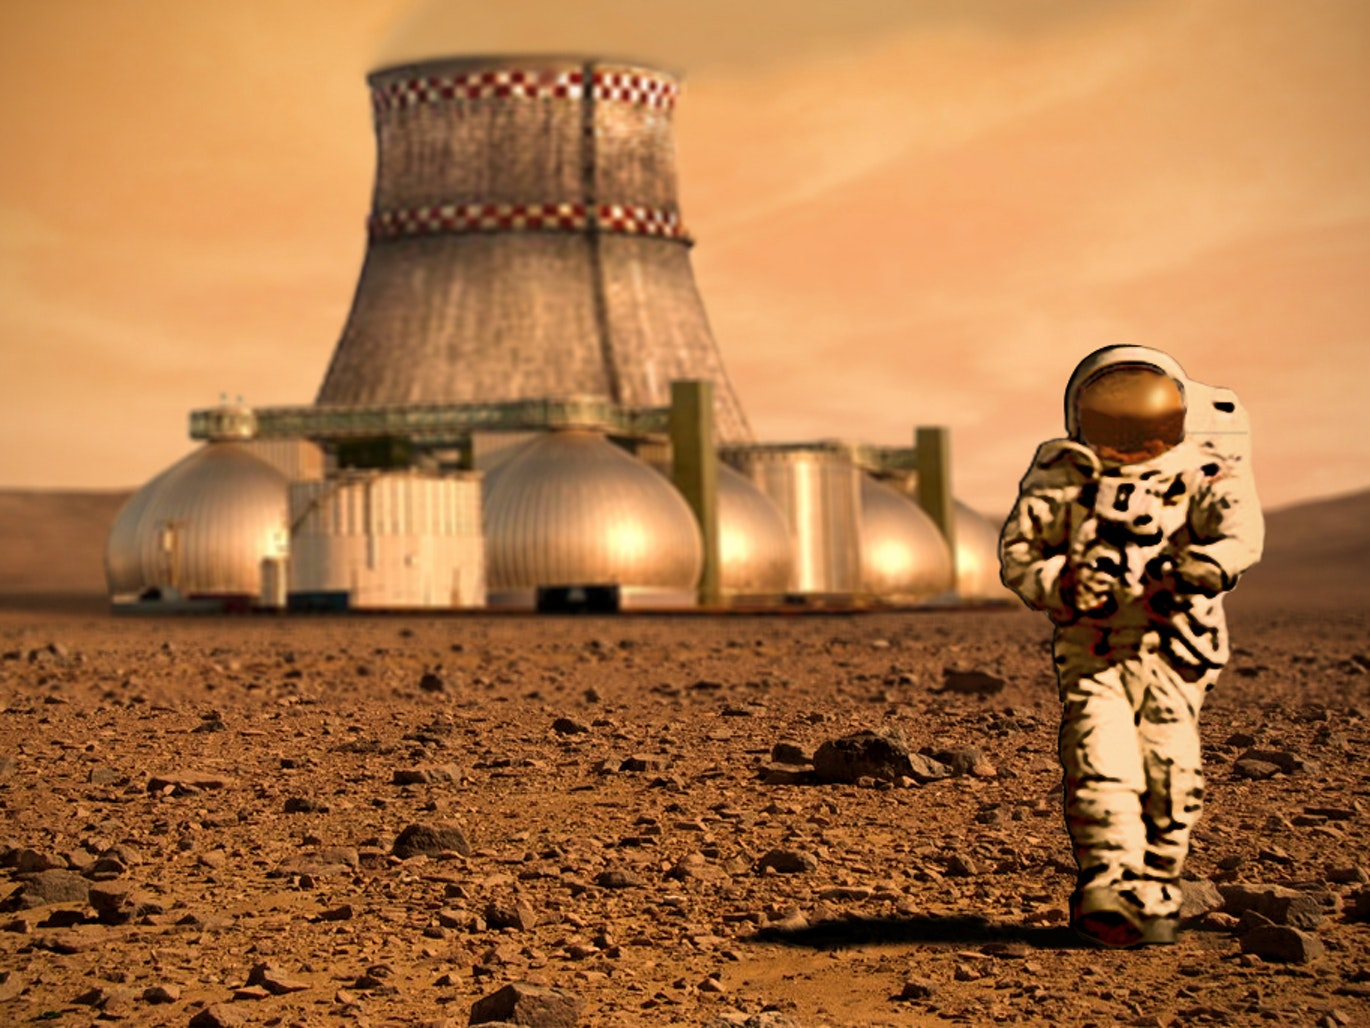 NASA is Looking Into 3D Printing Homes for People on Mars